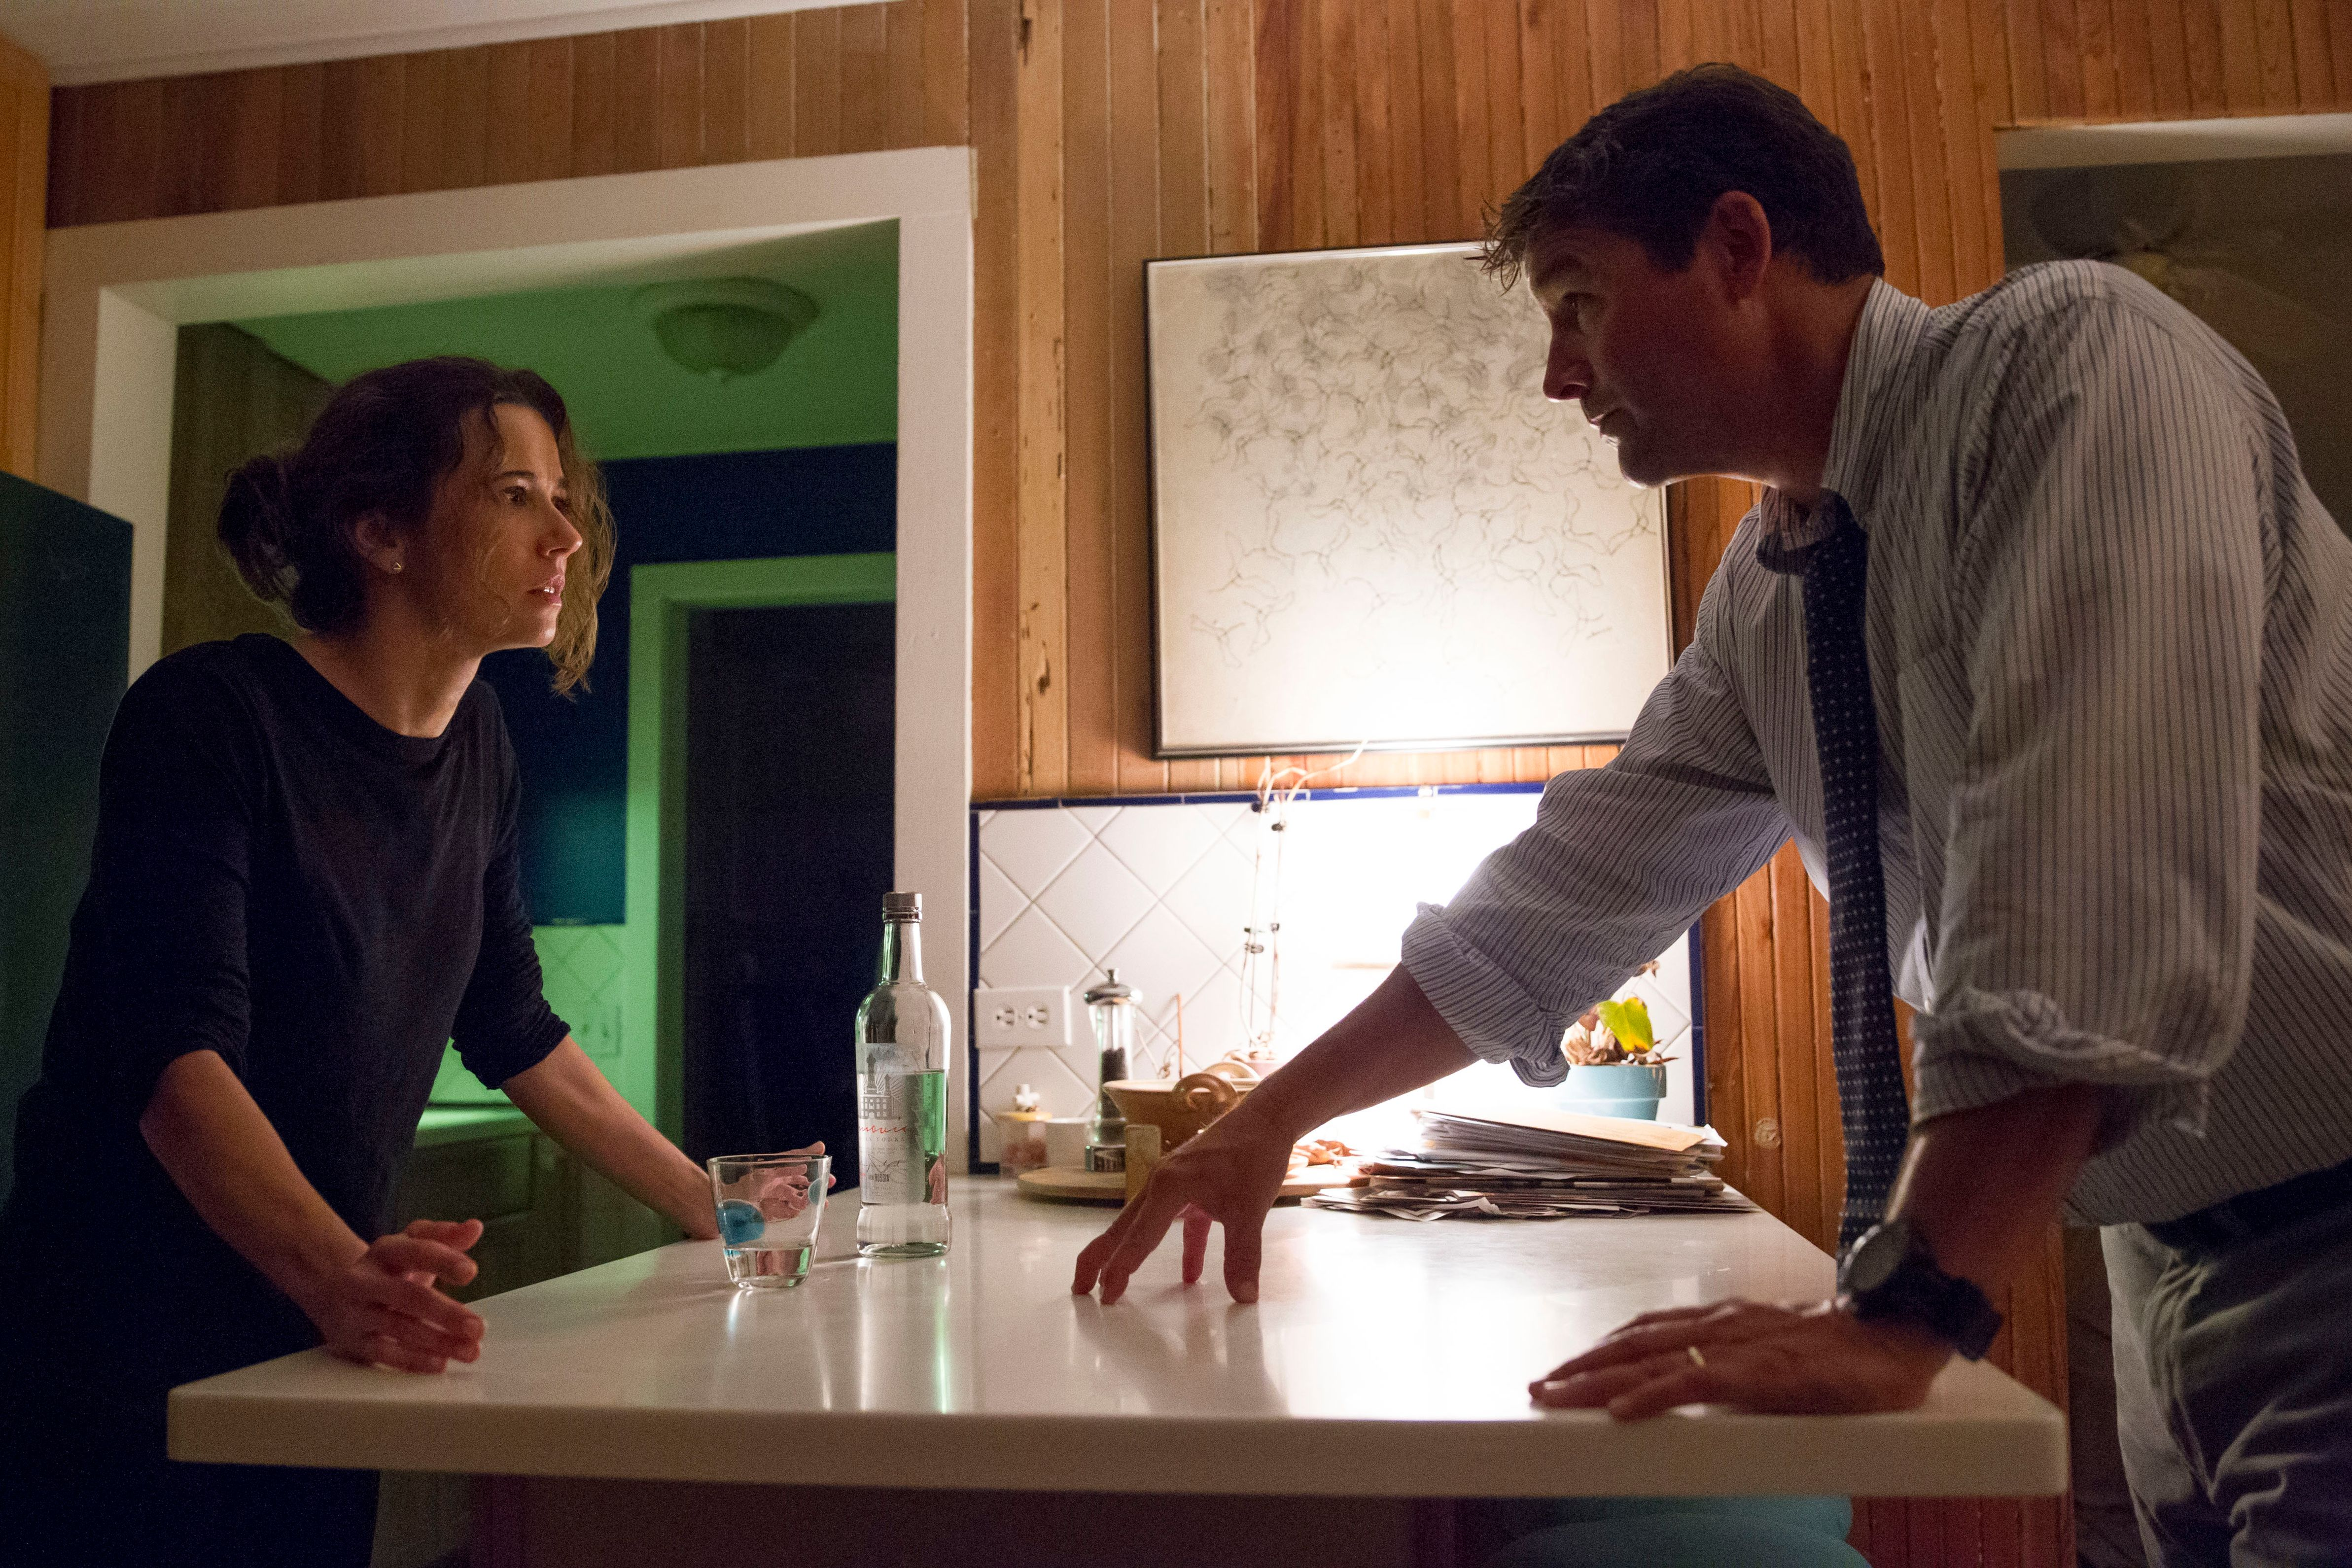 The Killing concluded after four seasons (one on Netflix) picture